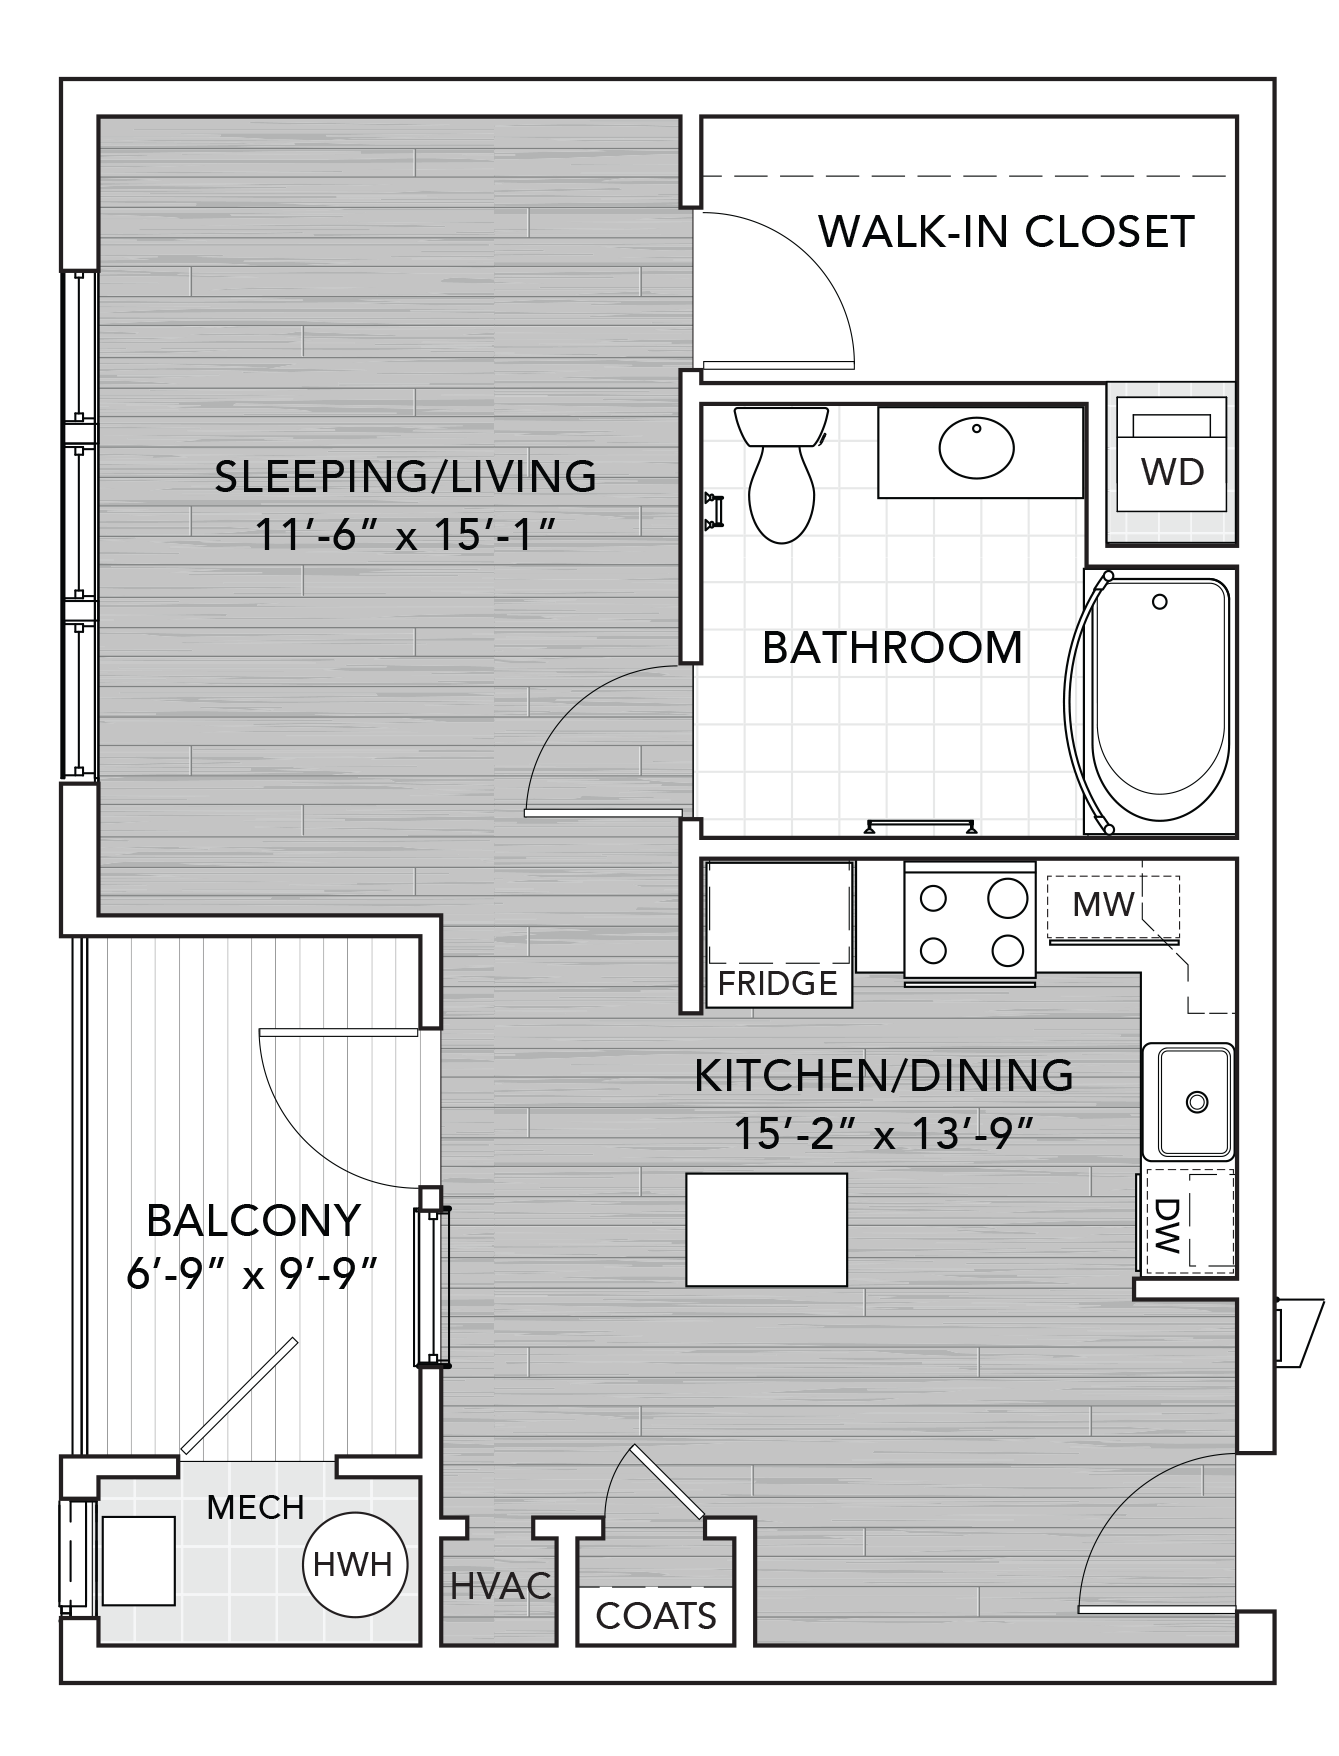 P0655013 parksquare d2 621 2 floorplan